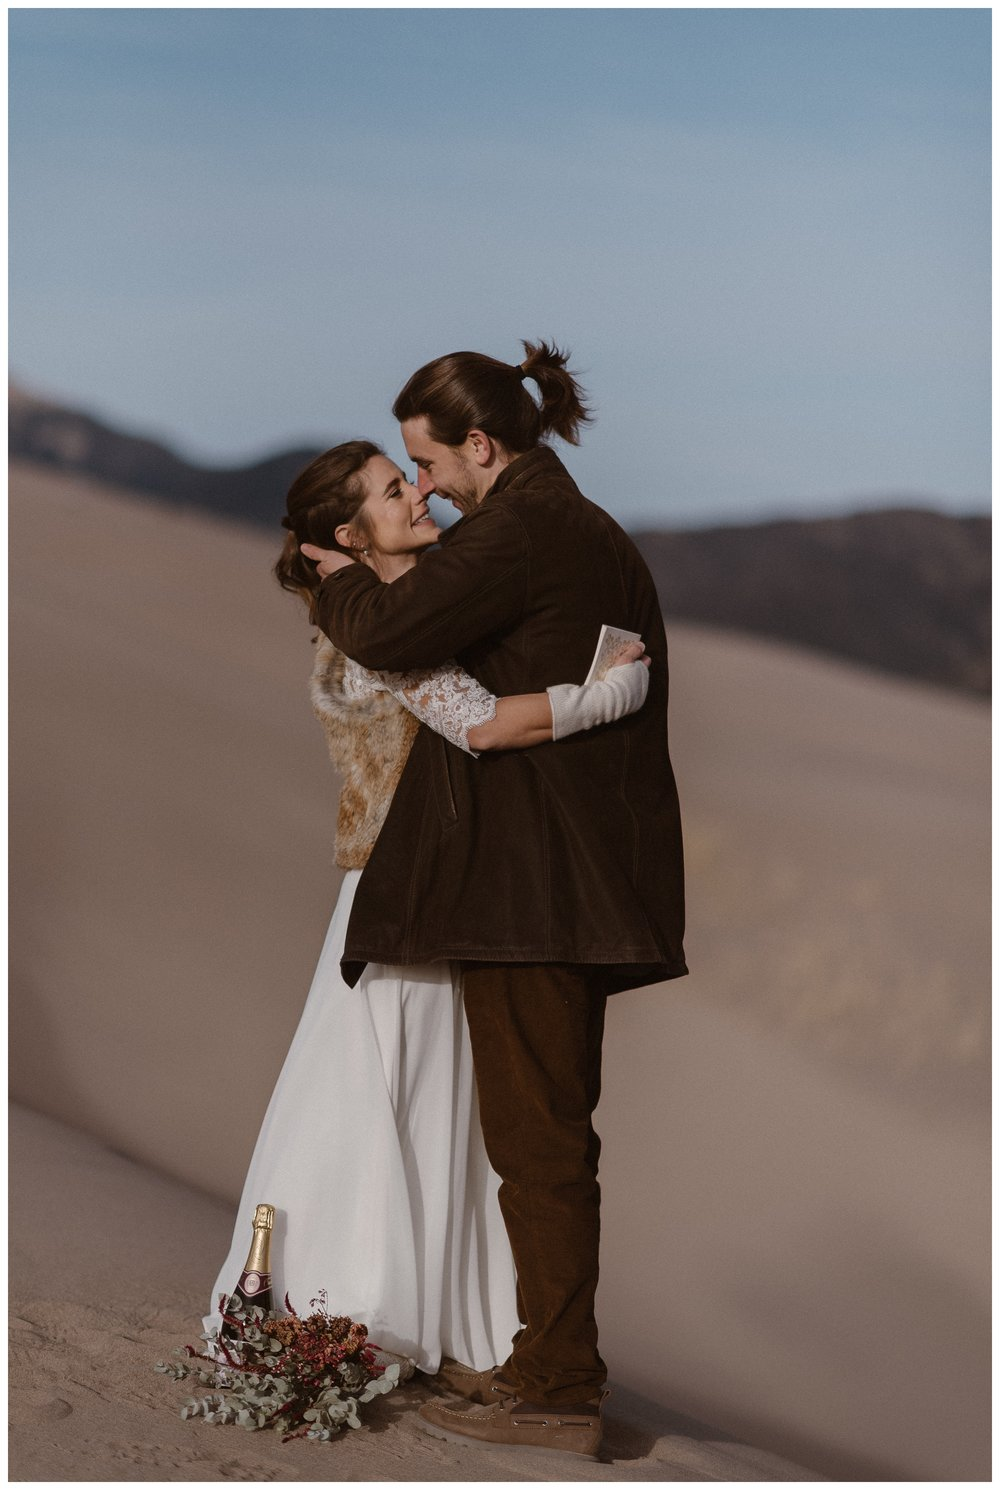 Newly married, Olivia and Justin embrace after their intimate elopement on top of the dunes in Southern Colorado. Photo by Maddie Mae Photo, Adventures Instead.